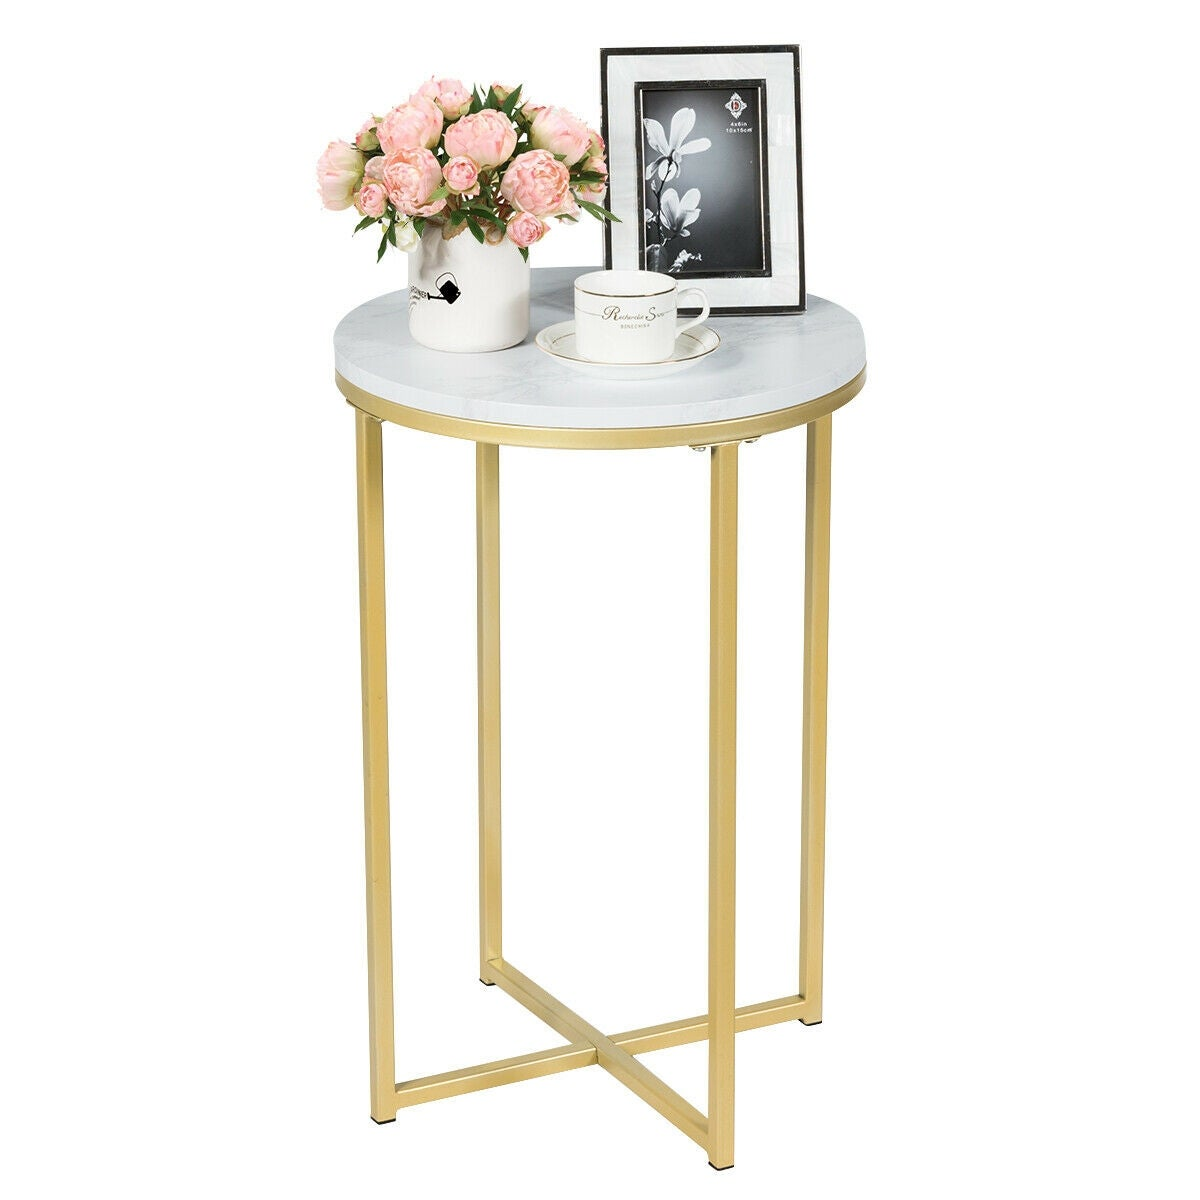 Gymax Modern Round Side End Coffee Table Nightstand Faux Marble Top w/Metal Frame - as pic